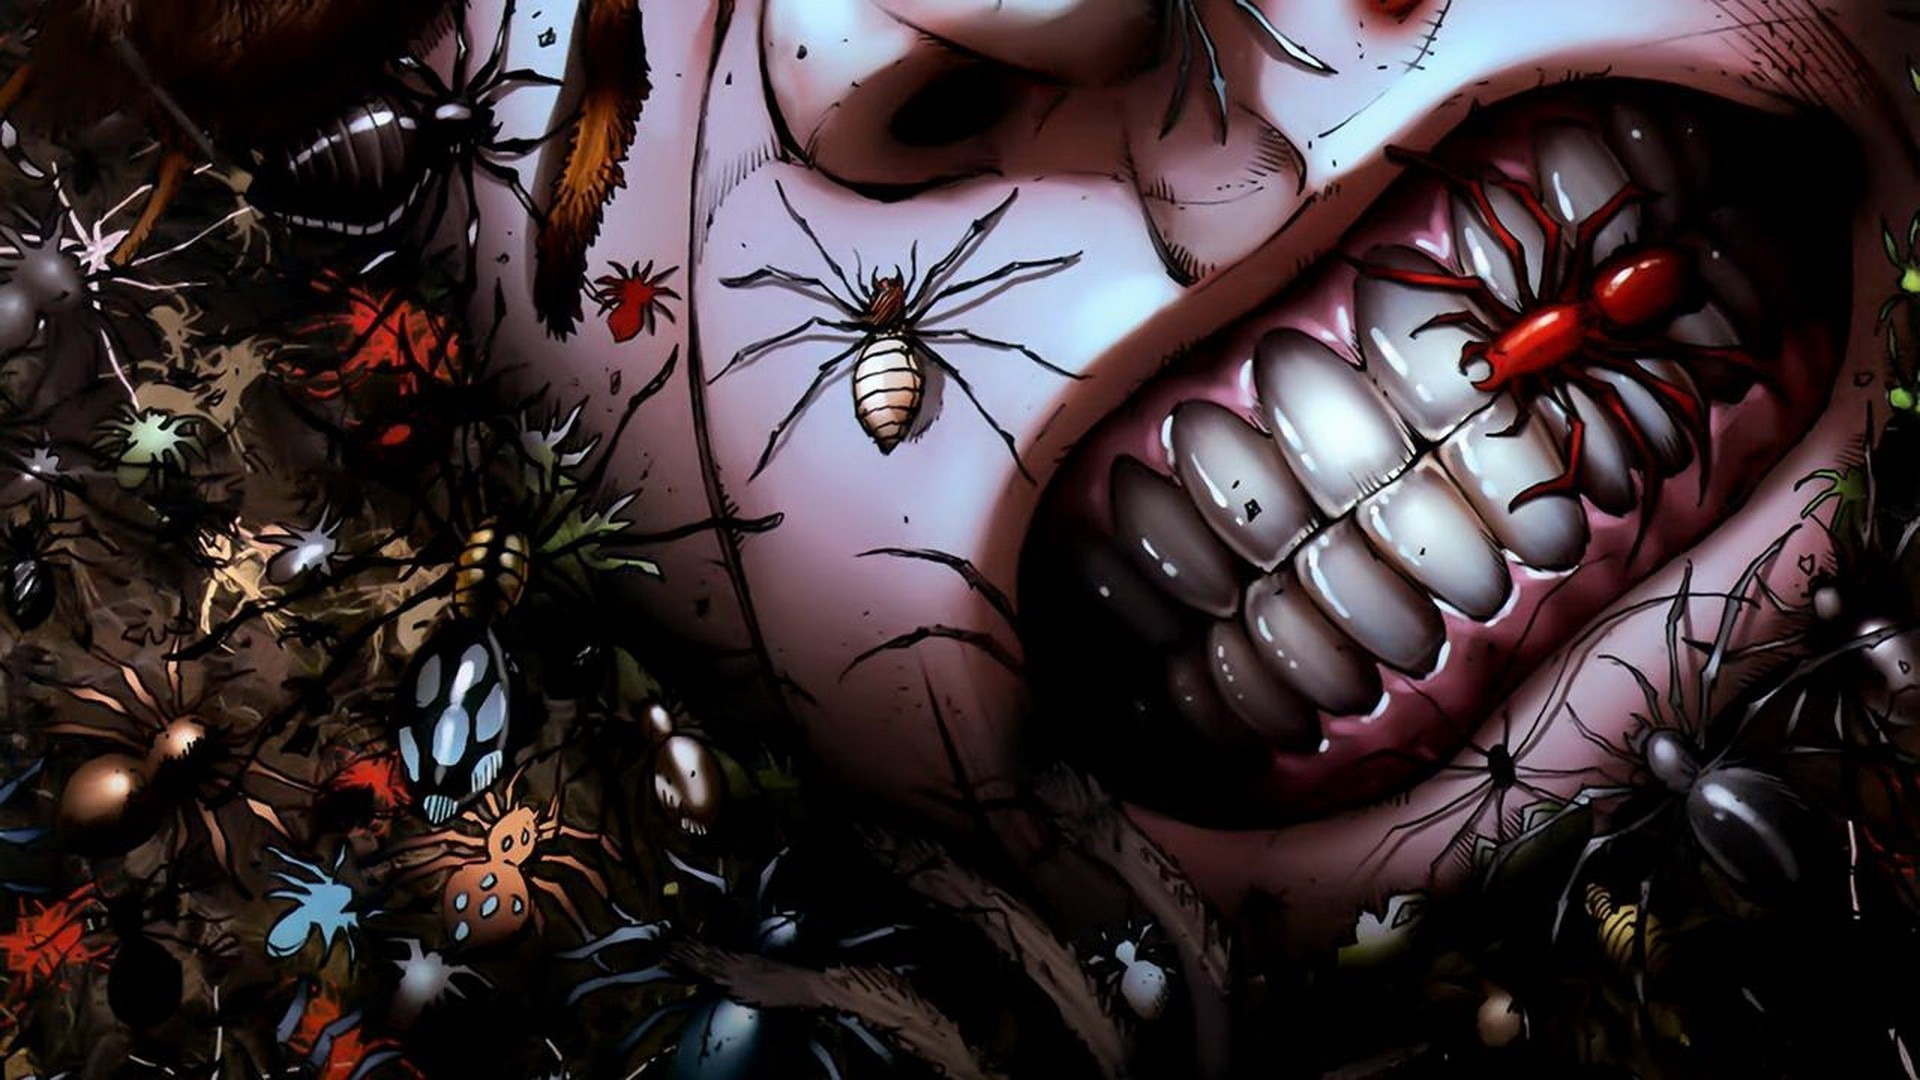 Grimm-Fairy-Tales comics anime dark horror insects spider grimace gross  spooky creepy scary wallpaper | | 24177 | WallpaperUP